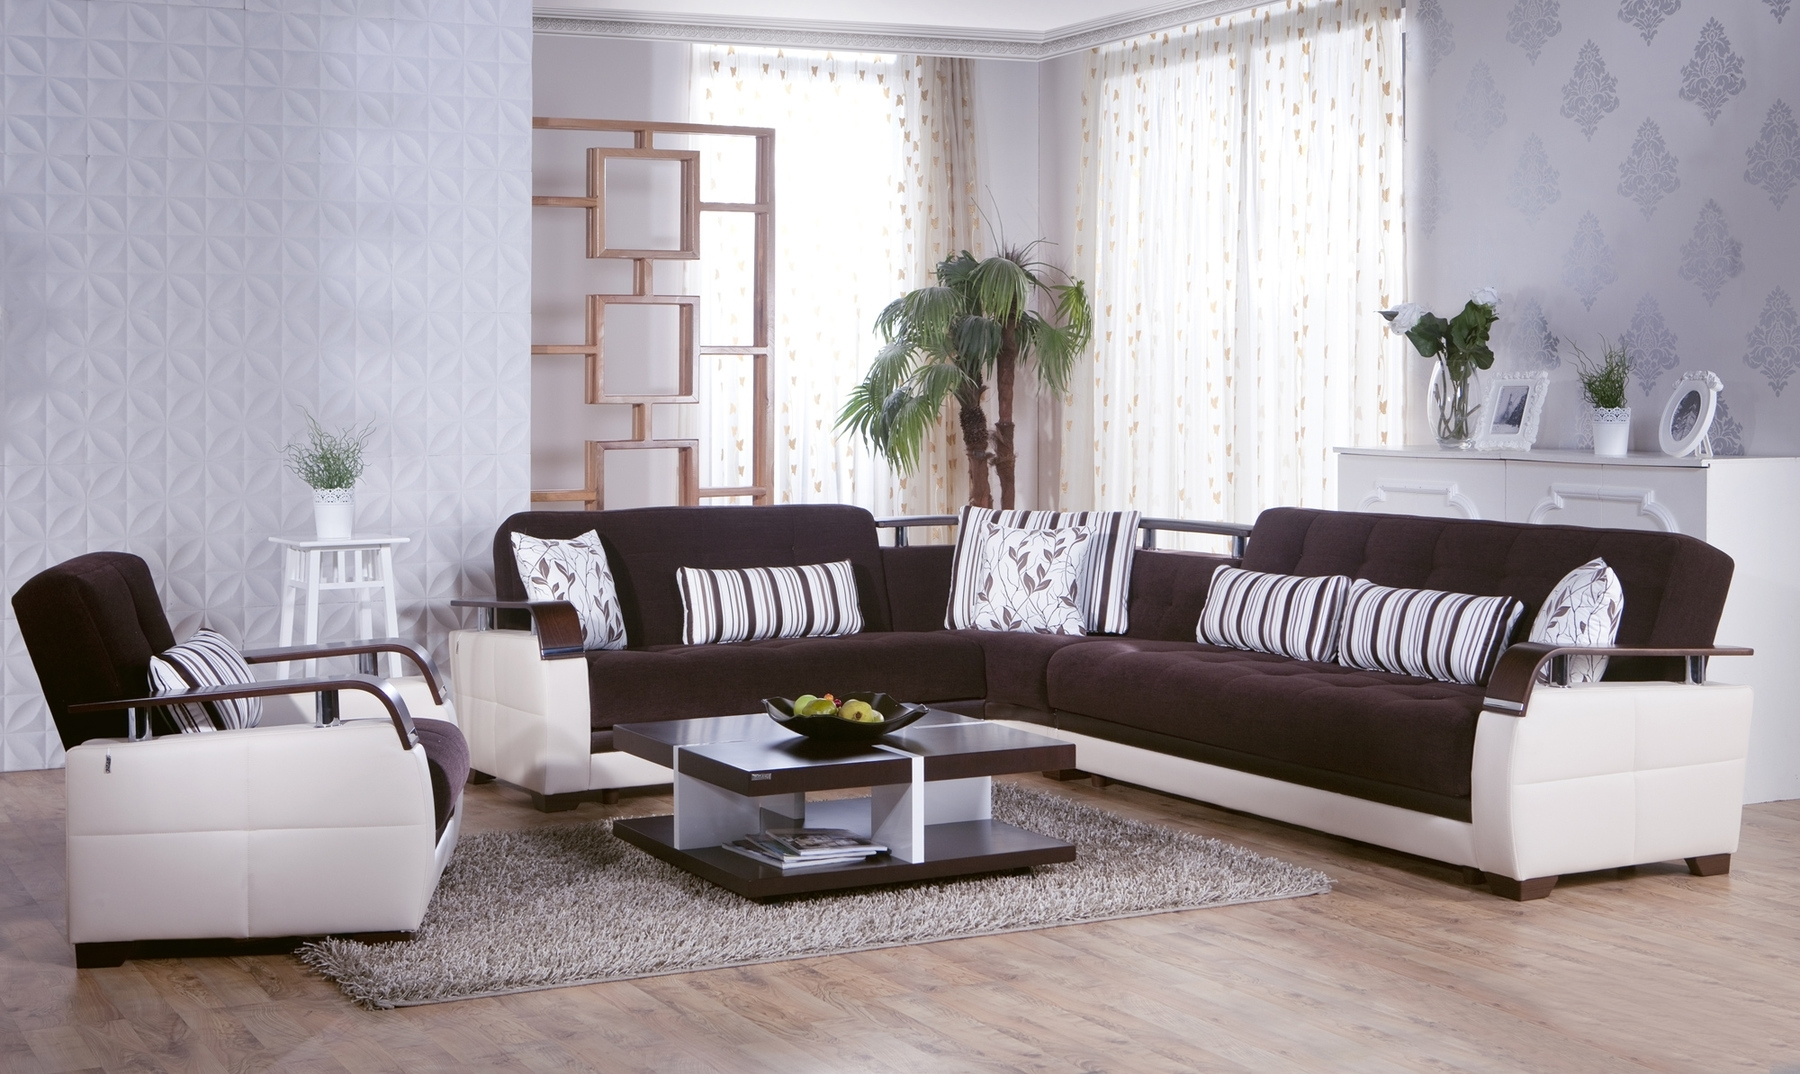 Contemporary Microfiber Sectional Sofa Pertaining To Most Popular Modern Microfiber Sectional Sofas (View 15 of 20)